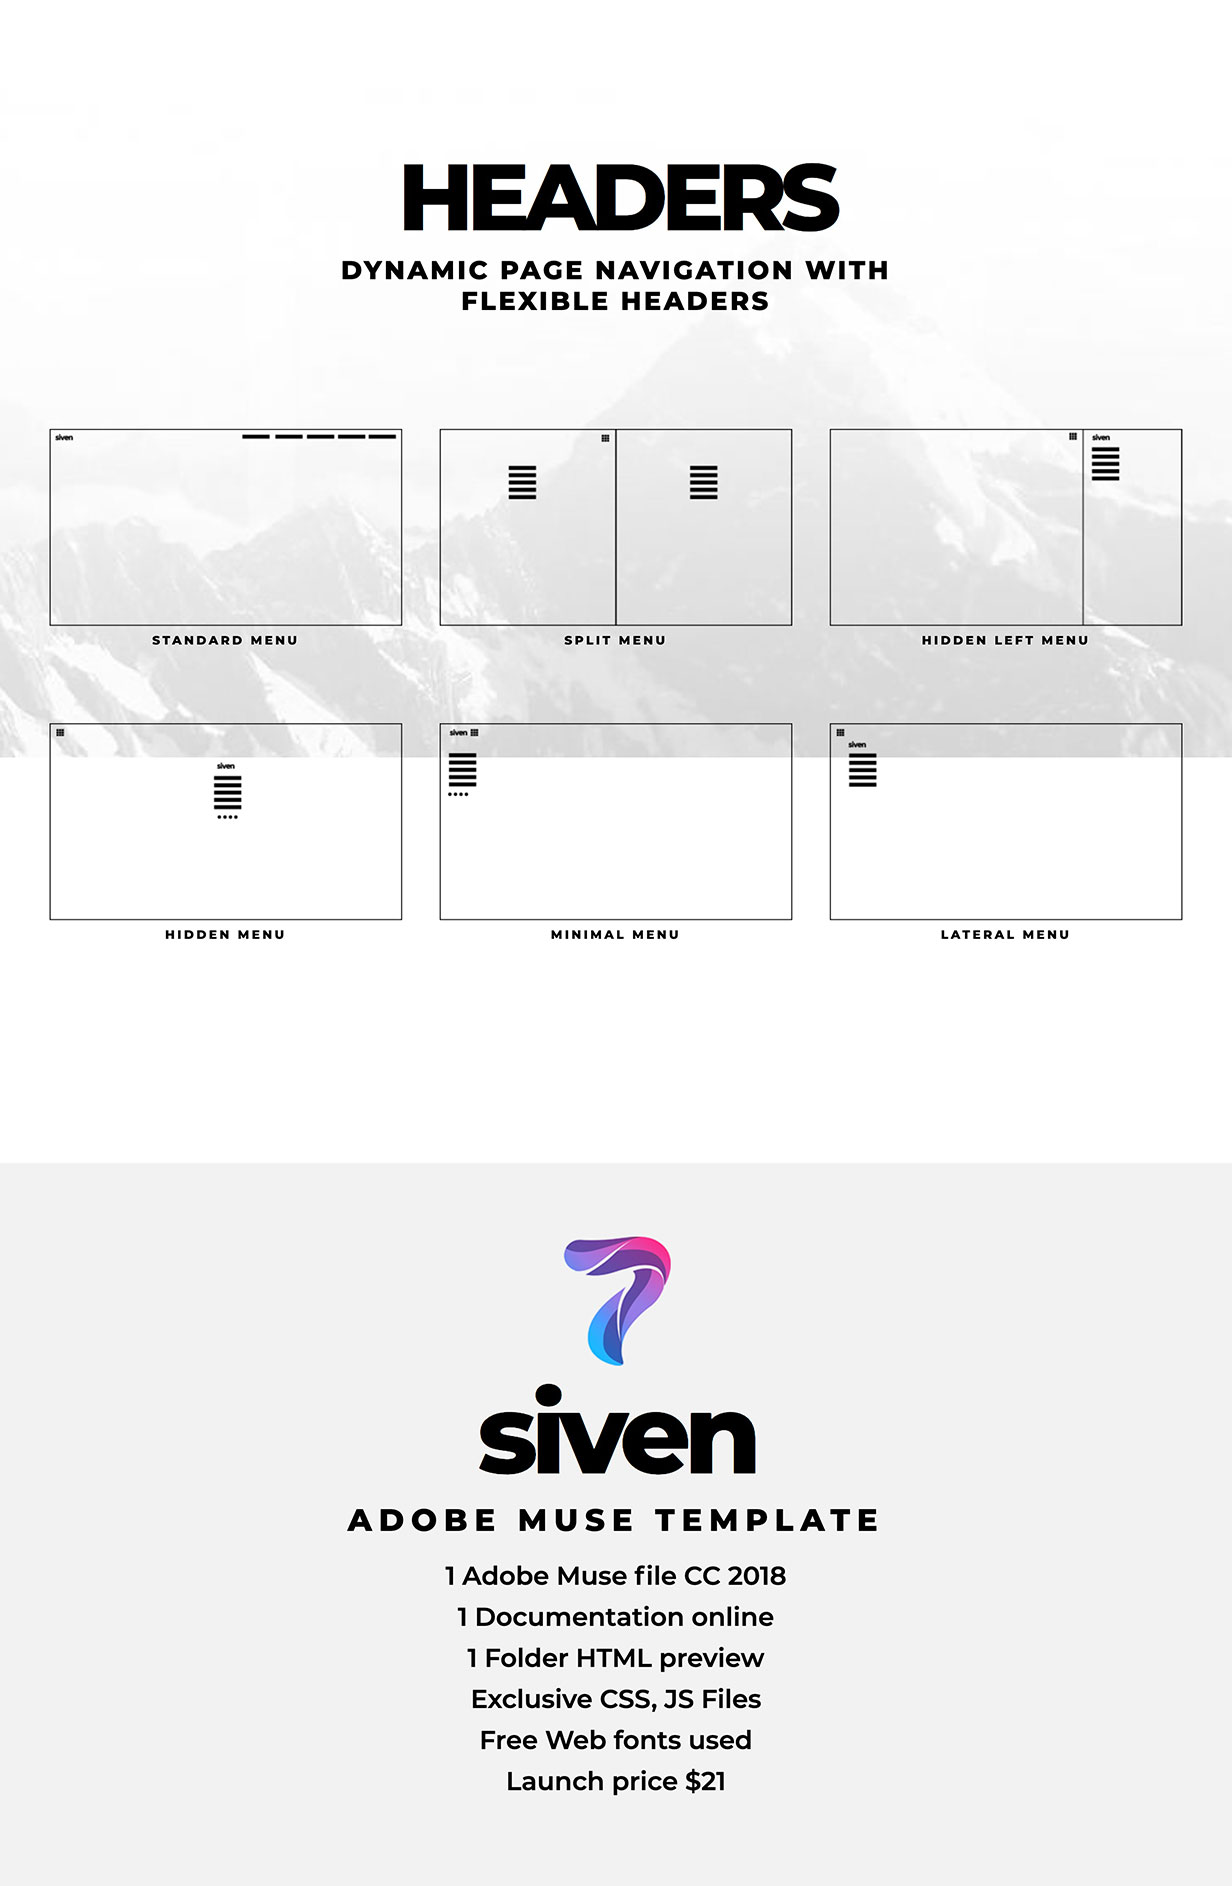 Siven - Adobe Muse Template - 4